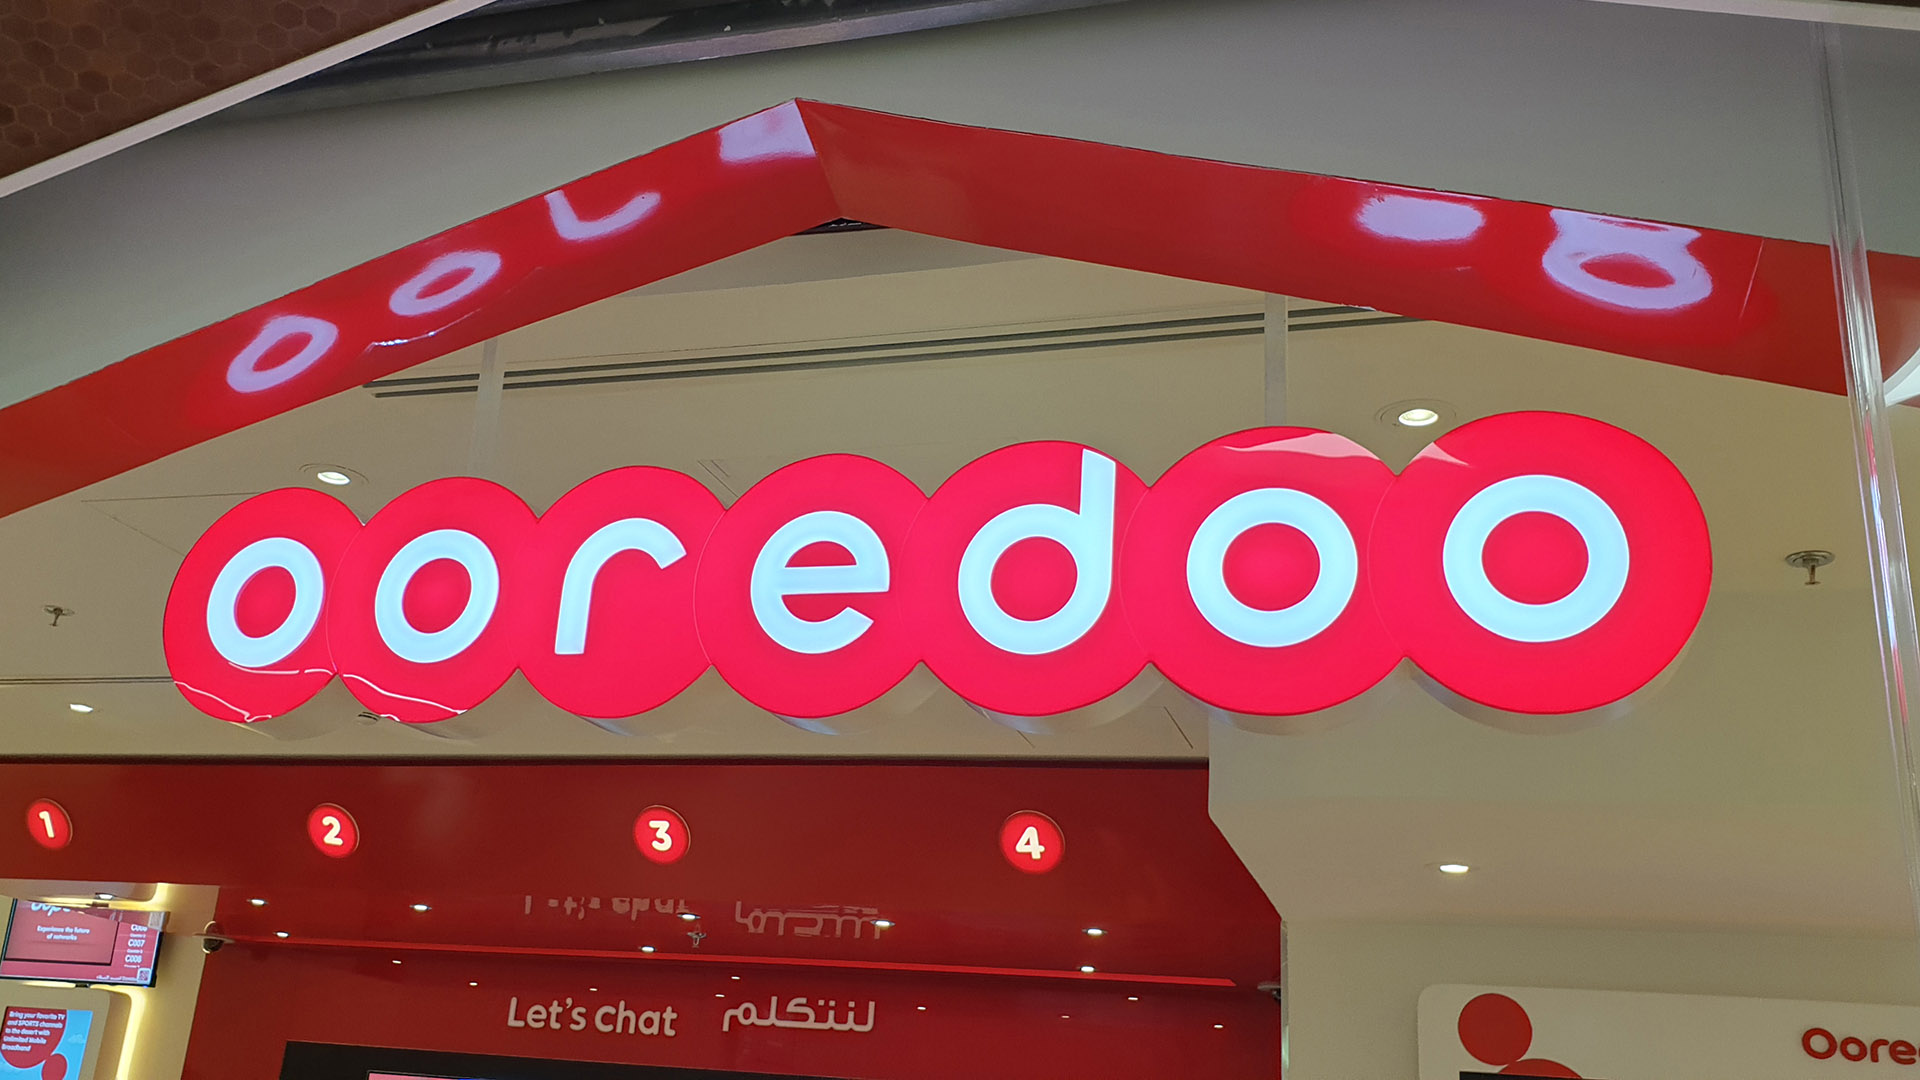 Oordeoo Shop Front Signs at Msheireb Metro Station made and installed by ME Visual.